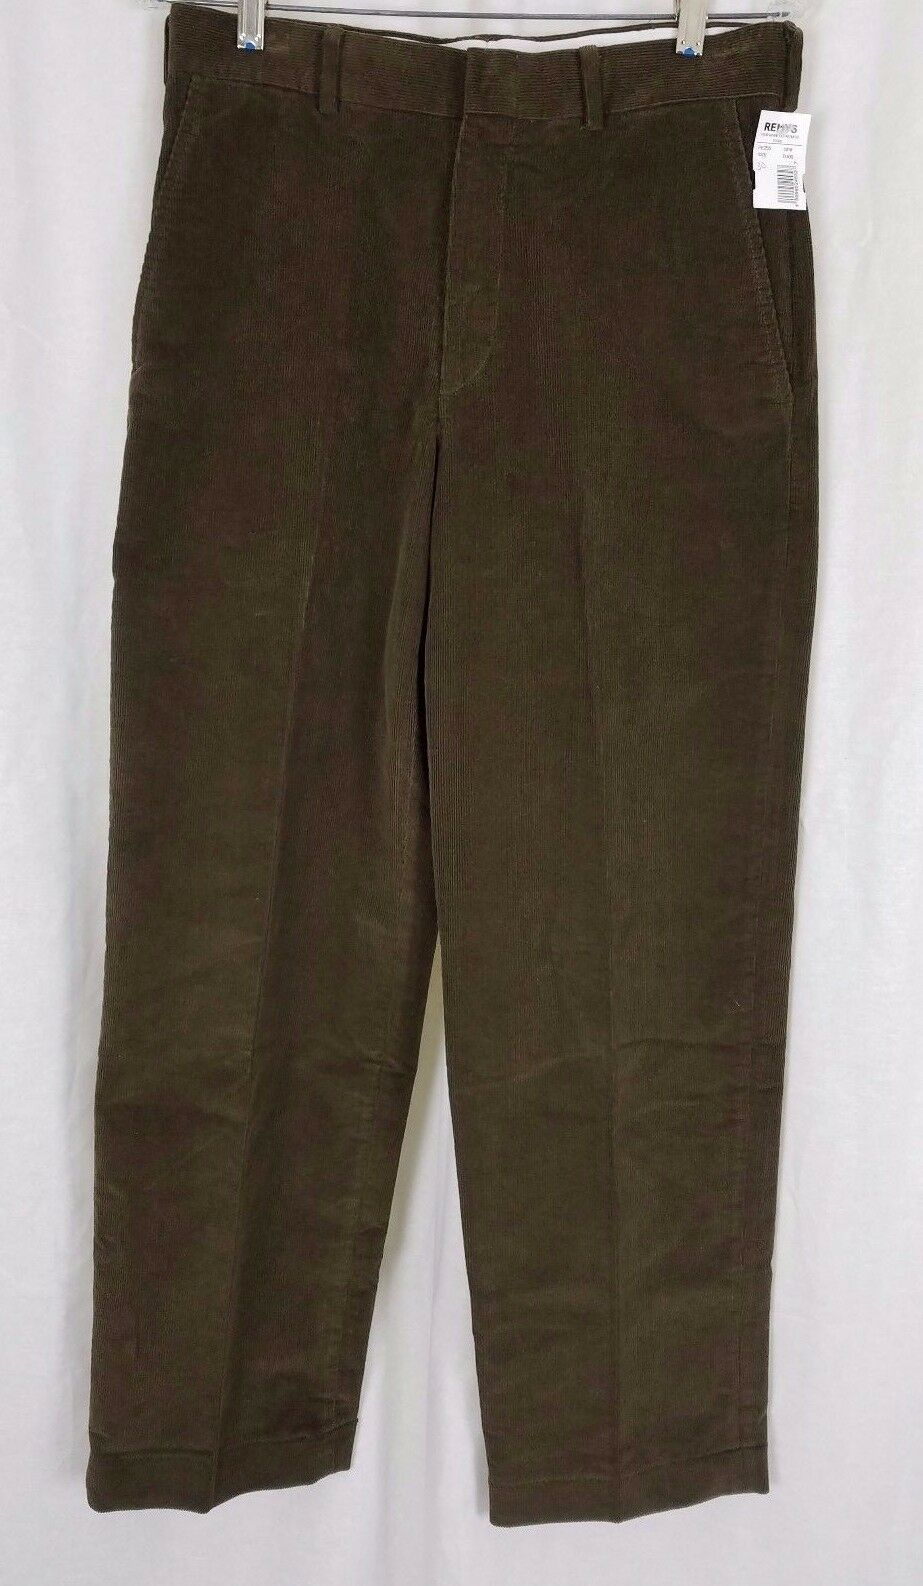 NWOT Lands End Traditional Fit Flat Front Cords Corduroy Pants Mens 31x29 Brown